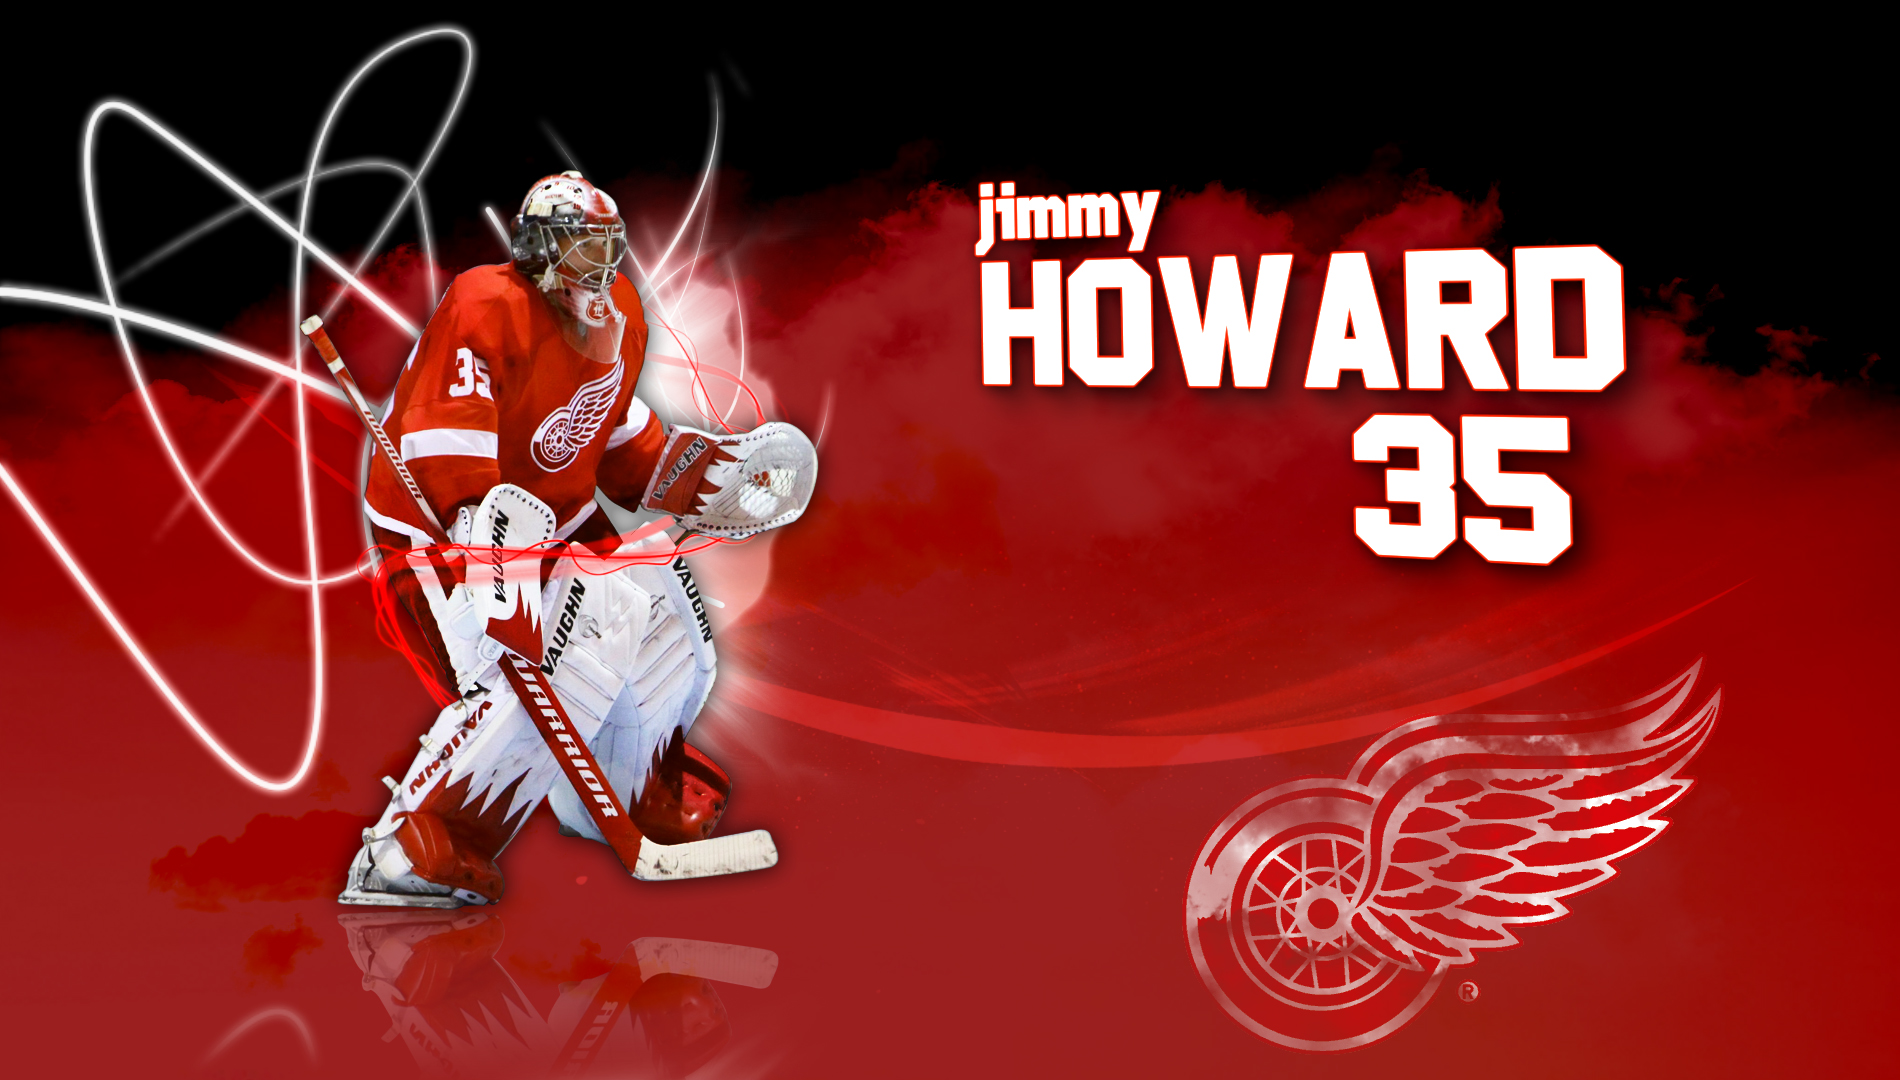 Jimmy Howard   HD WP by madeofglass13 1900x1080